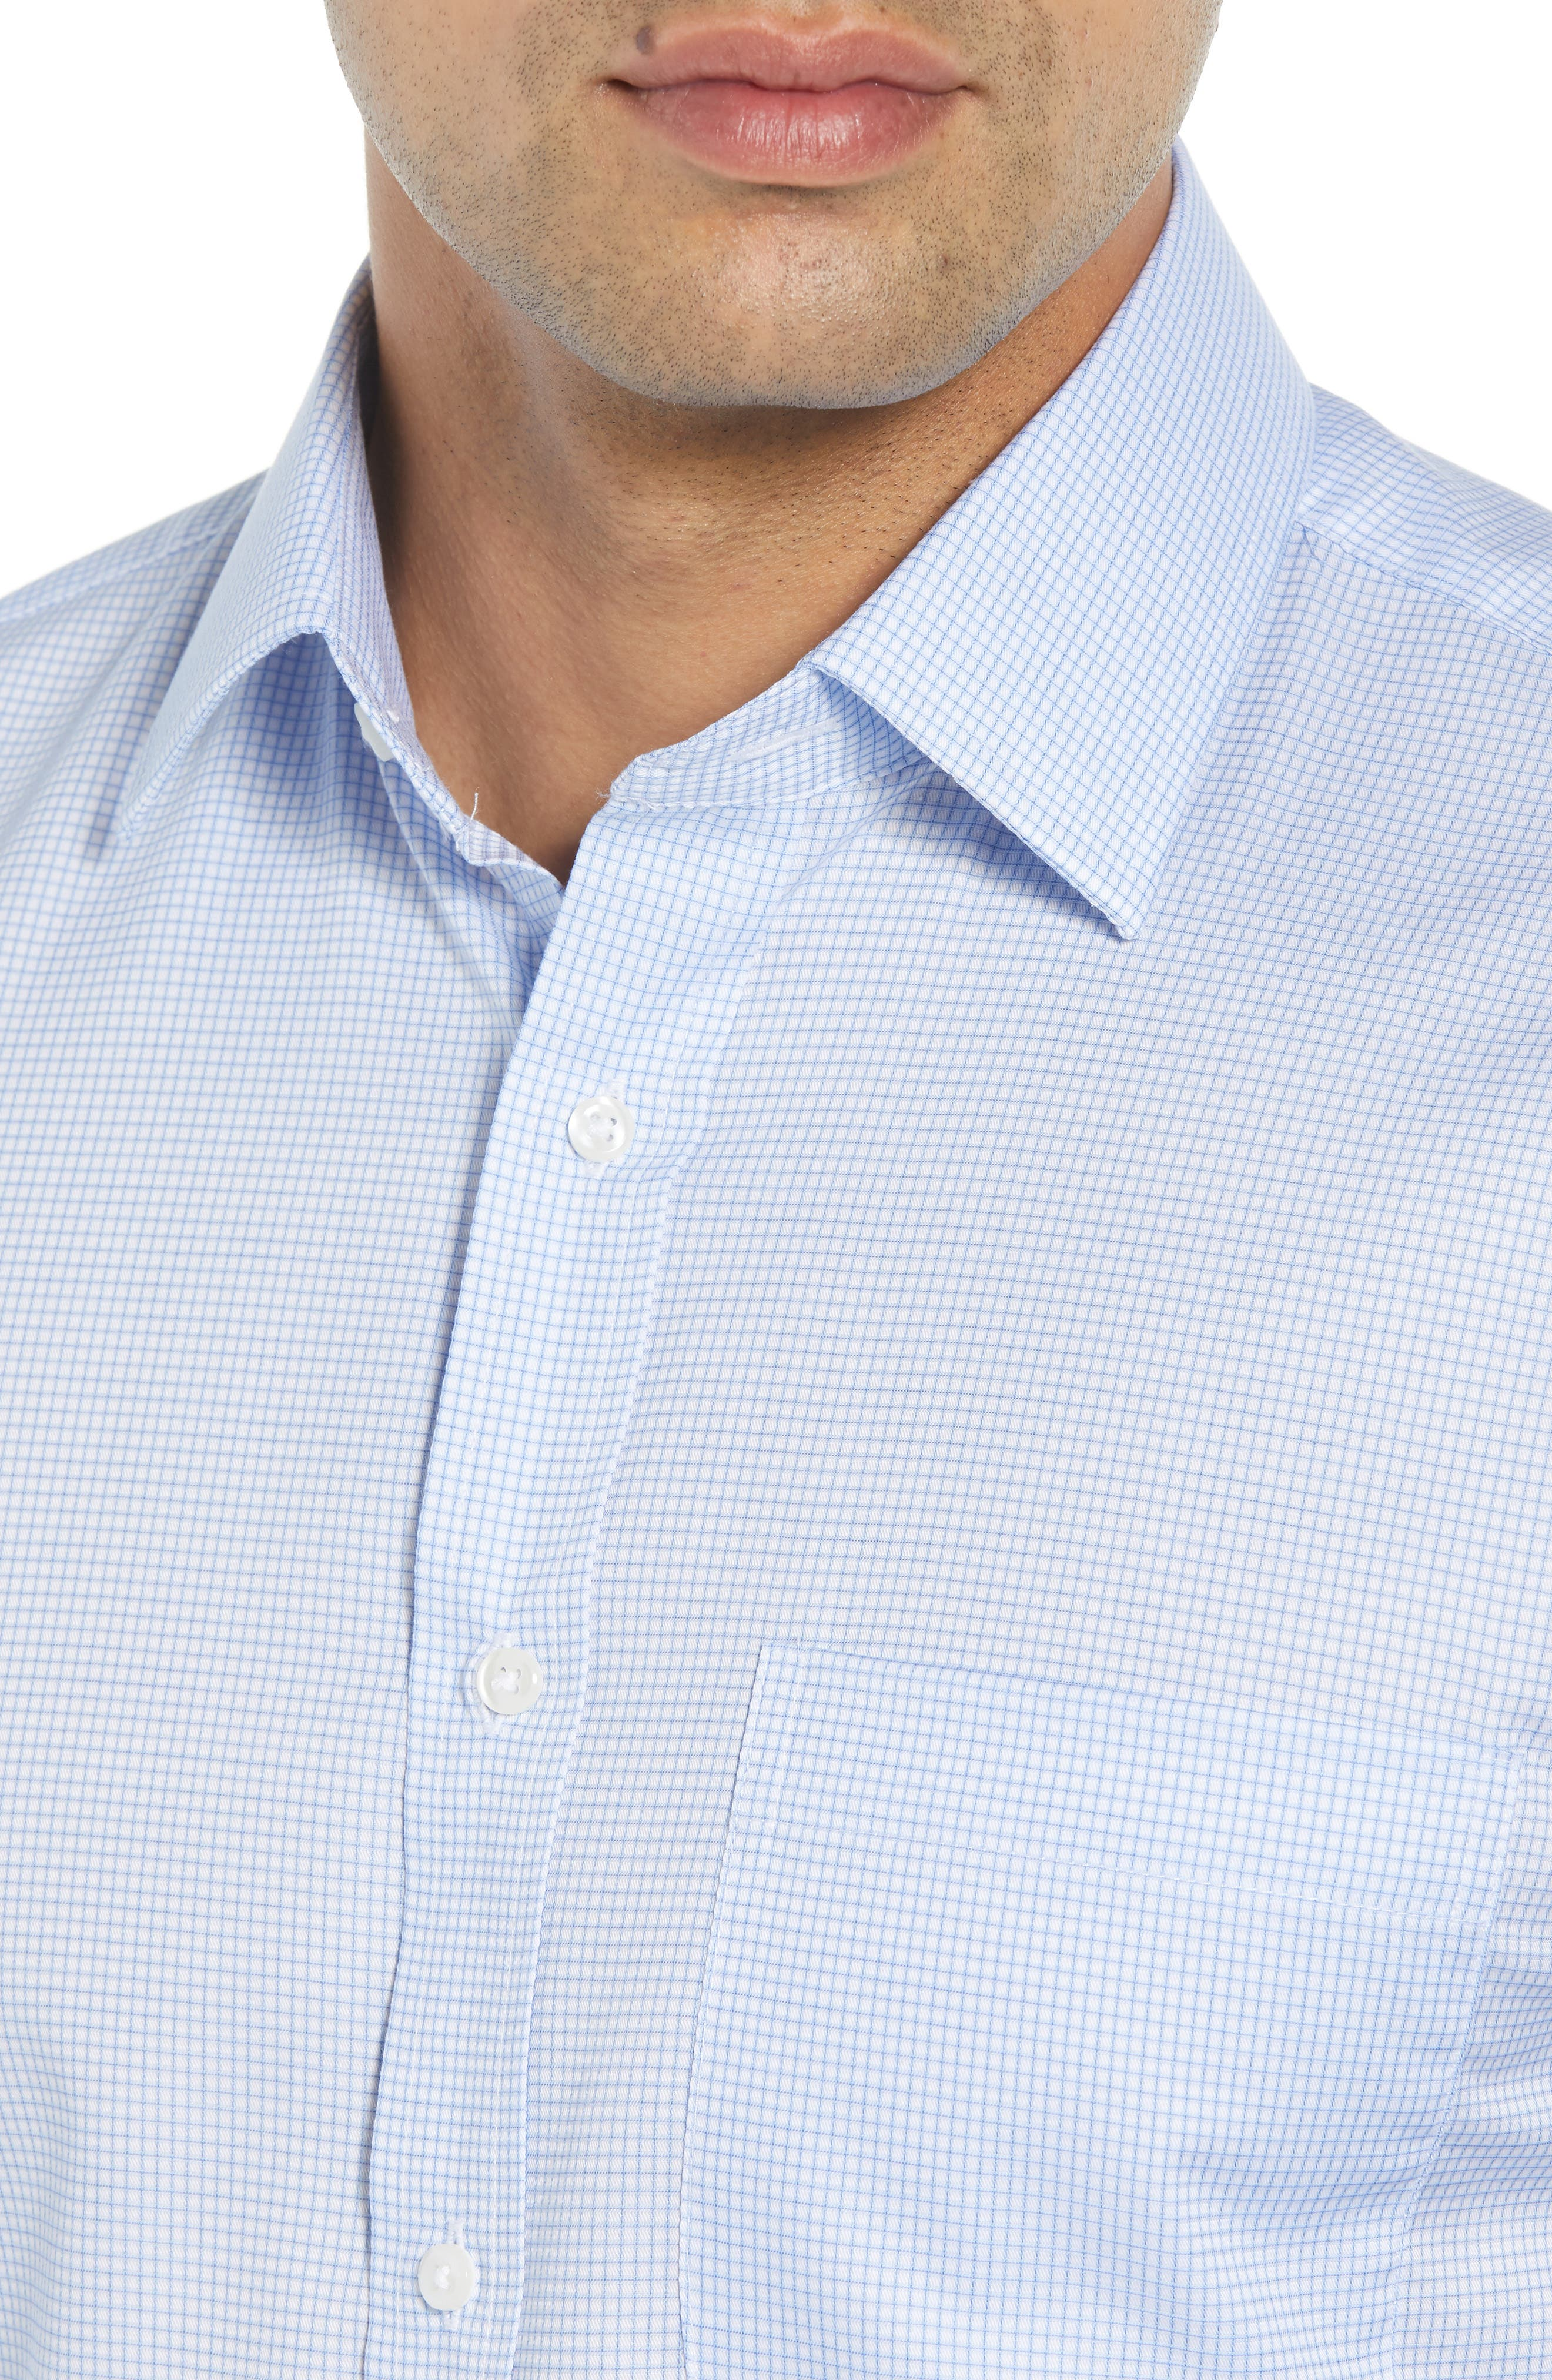 Traditional Fit Check Dress Shirt,                             Alternate thumbnail 2, color,                             450